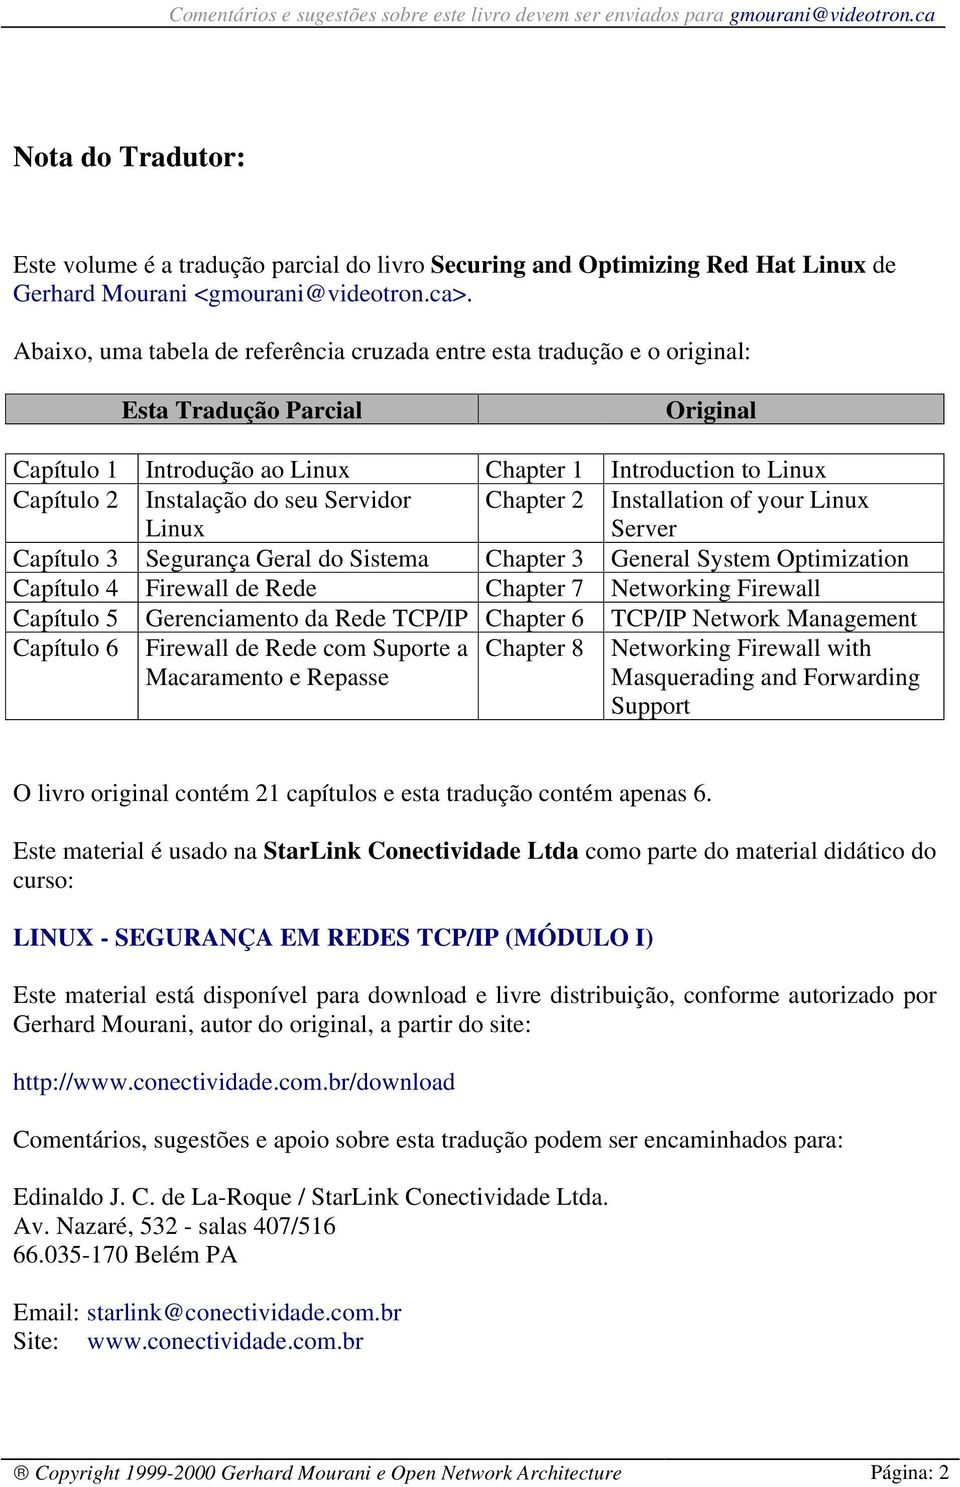 Servidor Linux Chapter 2 Installation of your Linux Server Capítulo 3 Segurança Geral do Sistema Chapter 3 General System Optimization Capítulo 4 Firewall de Rede Chapter 7 Networking Firewall